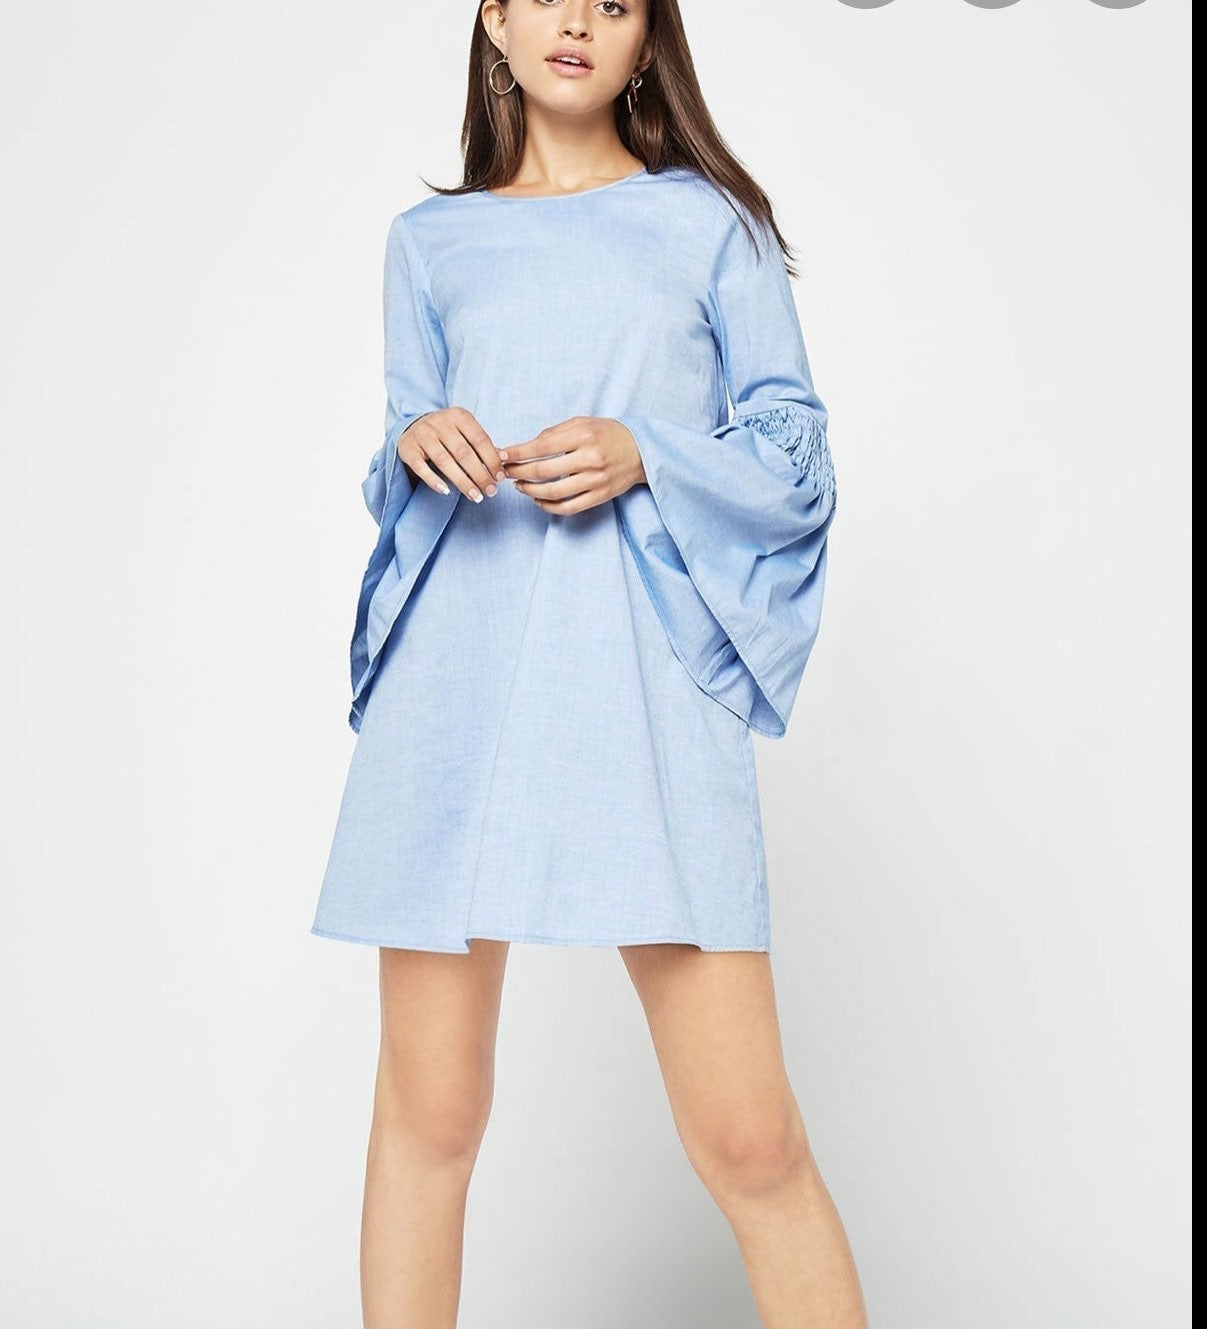 NWT-BCBGeneration BELL SLEEVE A-LINE DRE